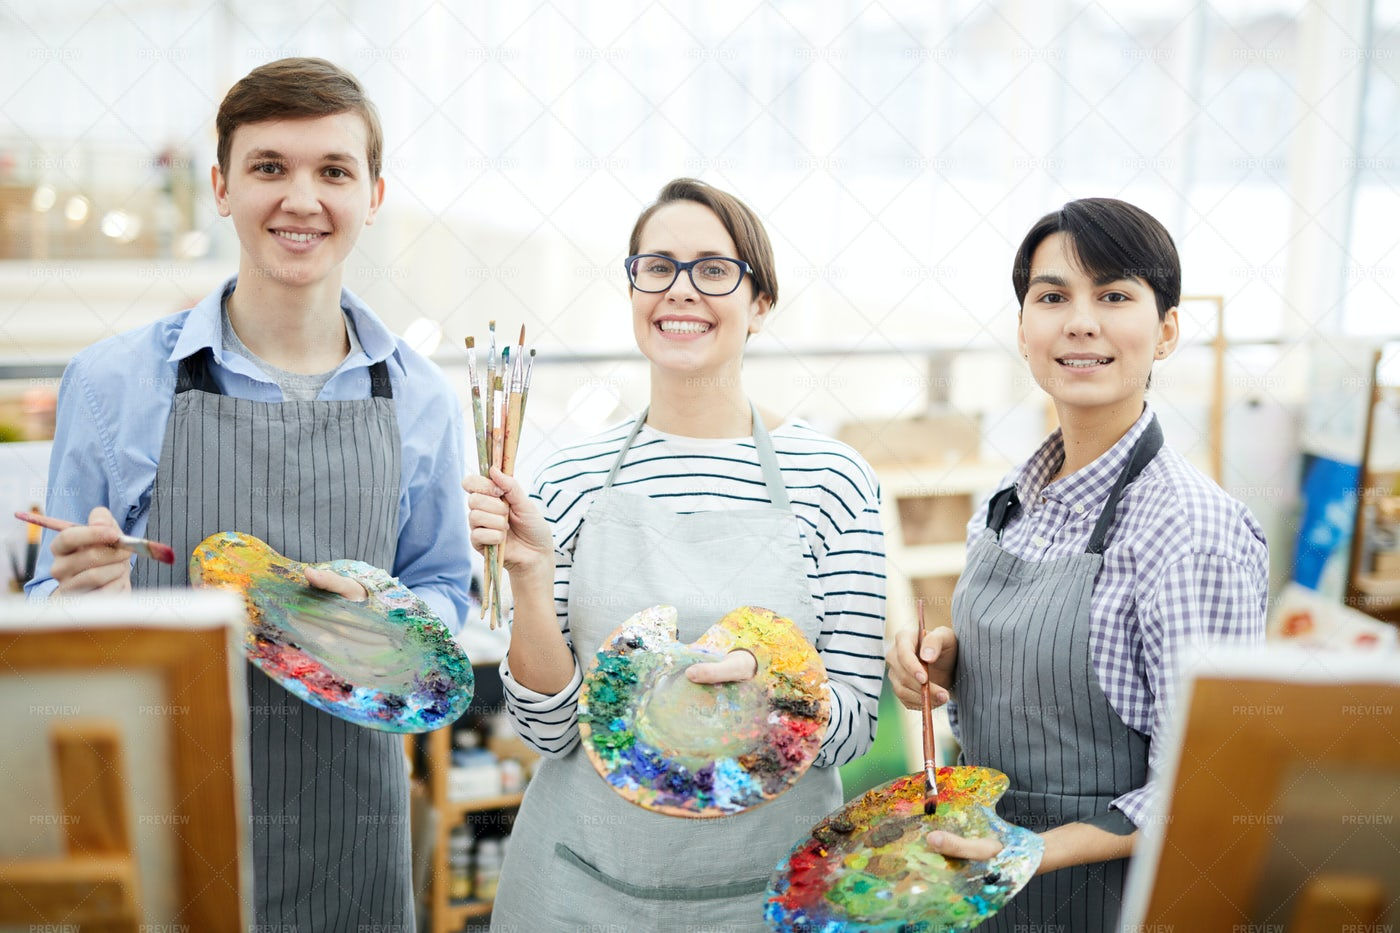 Group Of Students In Art Class: Stock Photos